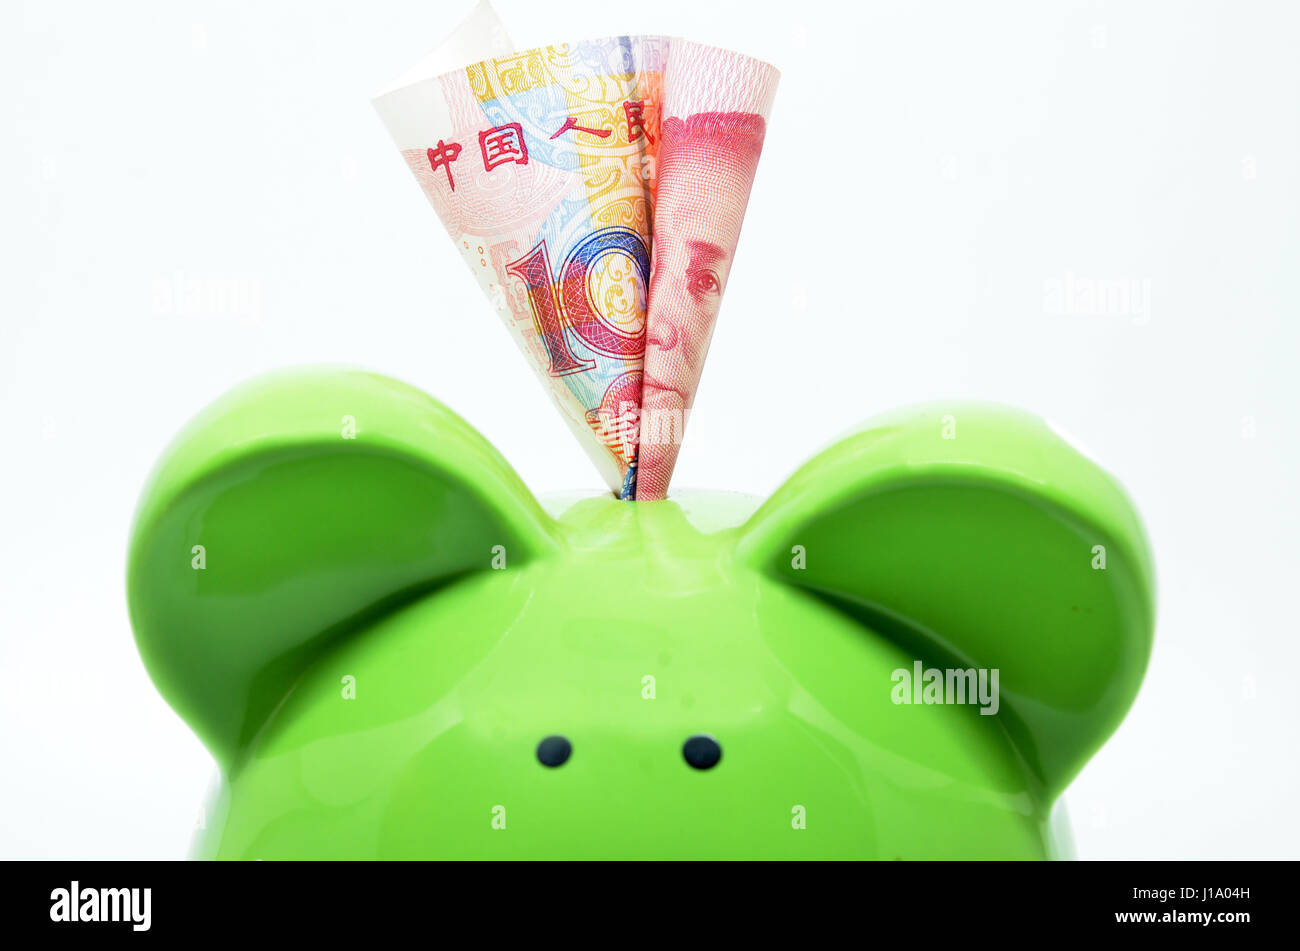 Green piggy bank with china currency rmb stock photo royalty free green piggy bank with china currency rmb buycottarizona Gallery